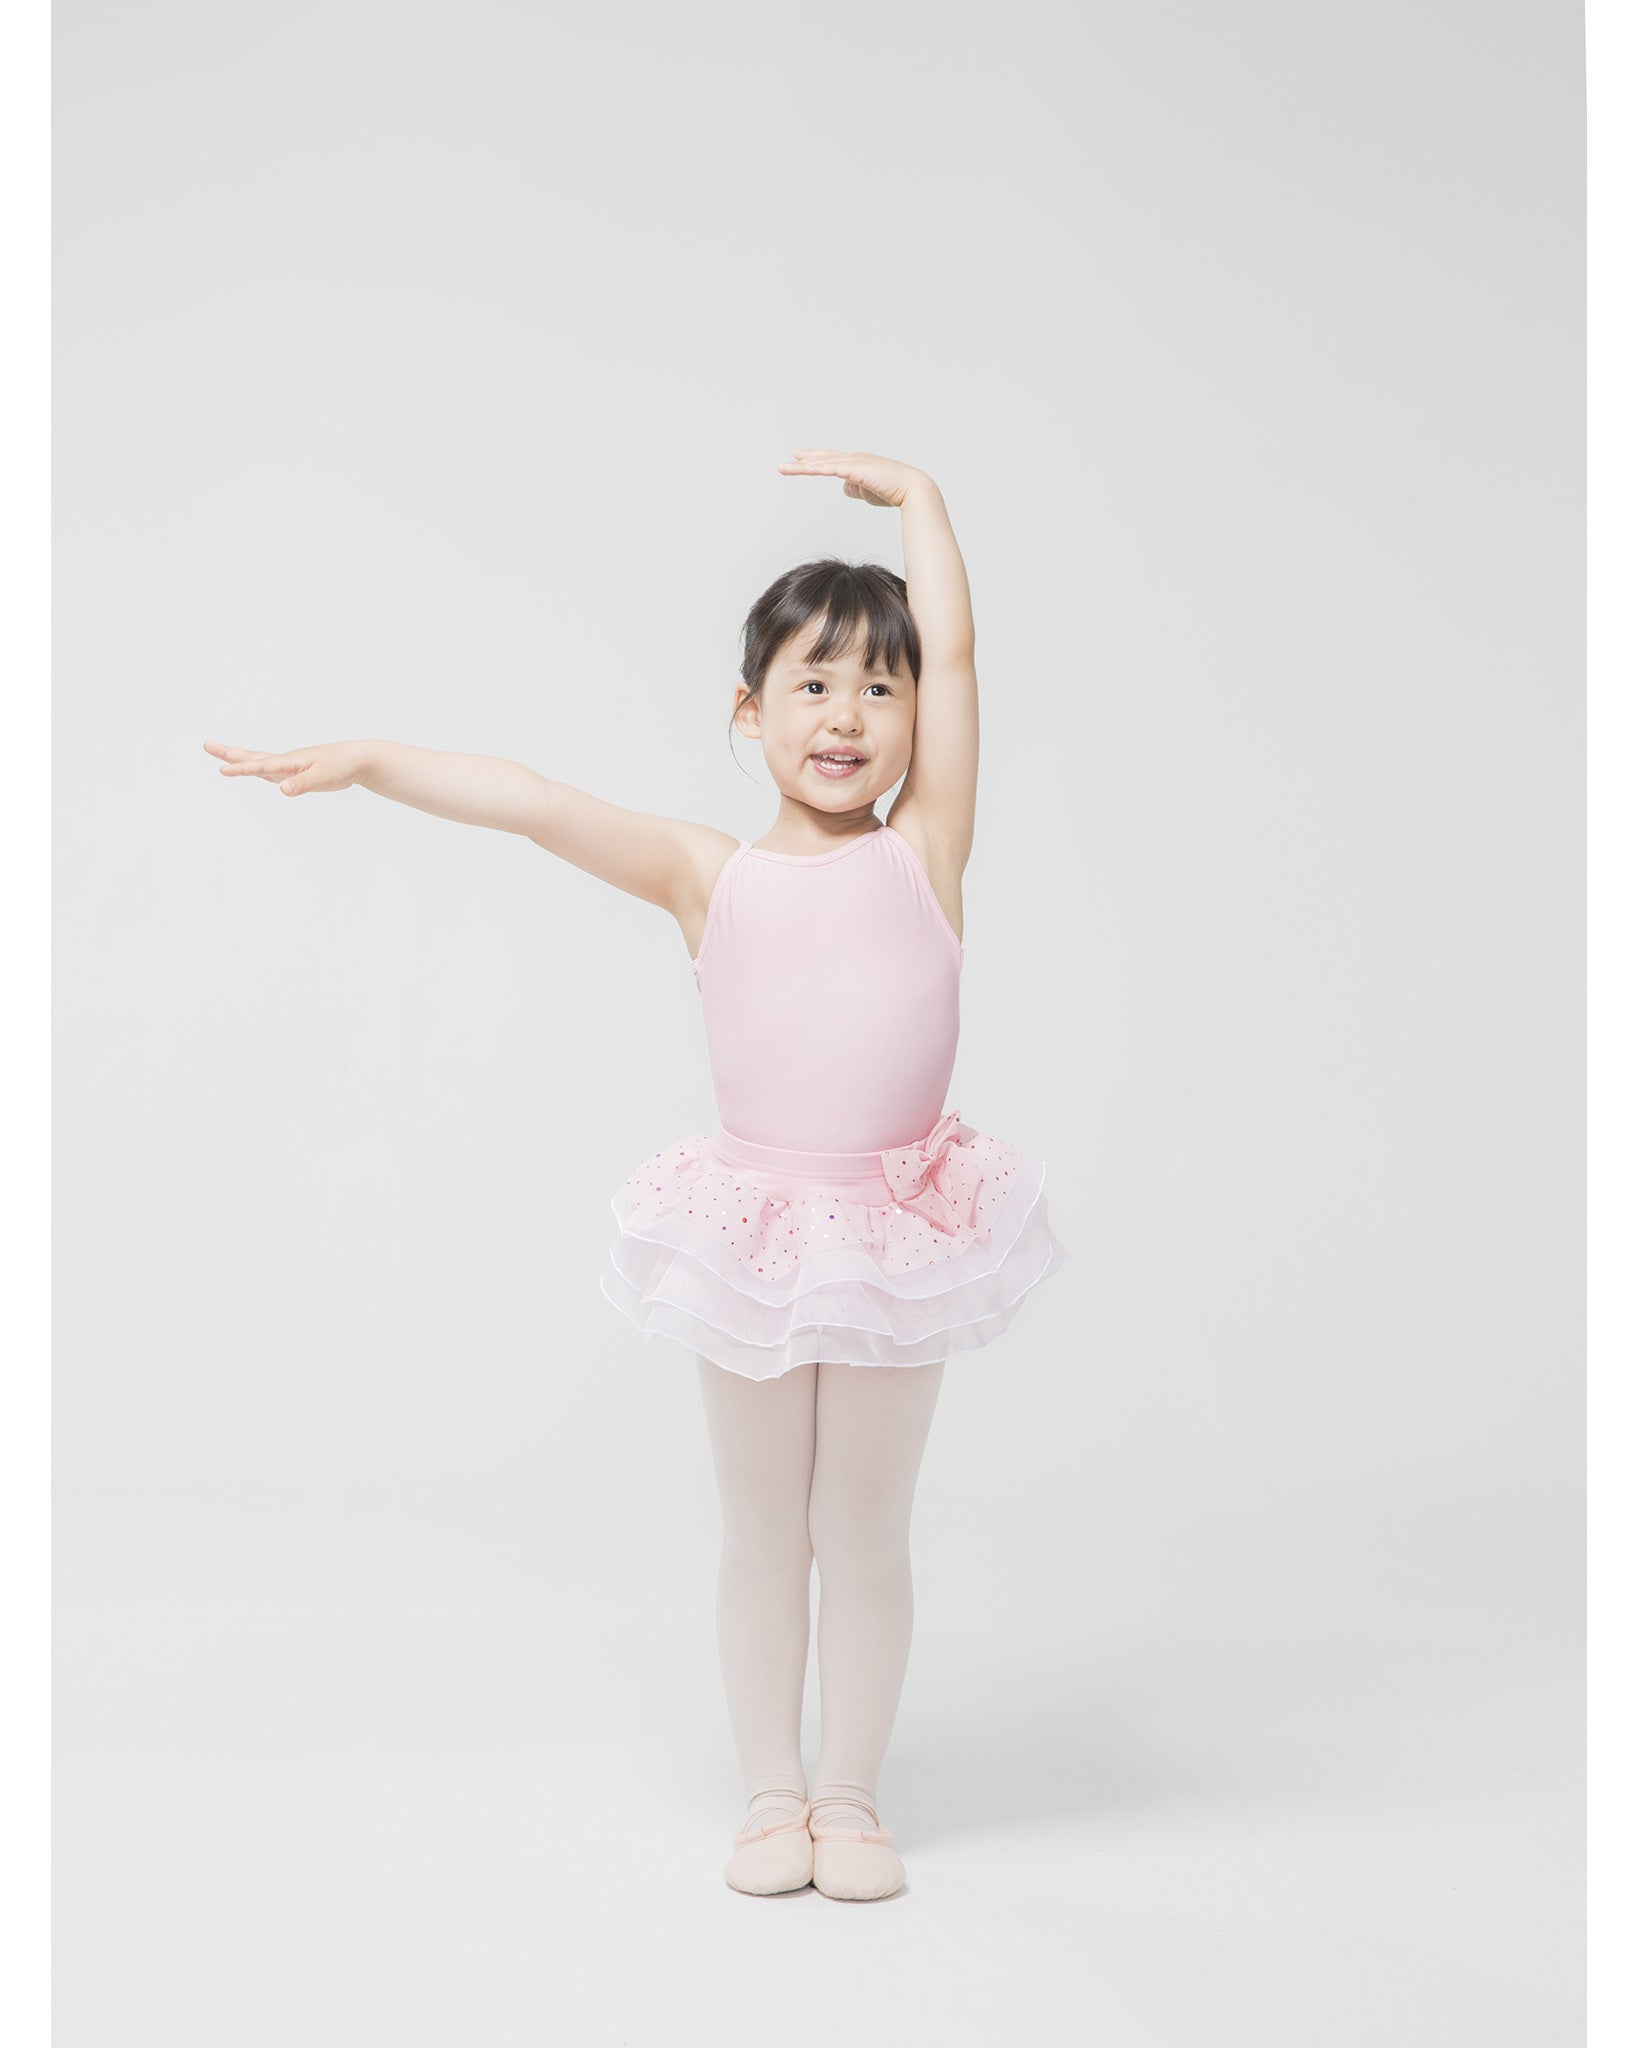 Sonata Little Star Sweet Sparkle Tutu Skirt - STAR017 Girls - Dancewear - Skirts - Dancewear Centre Canada